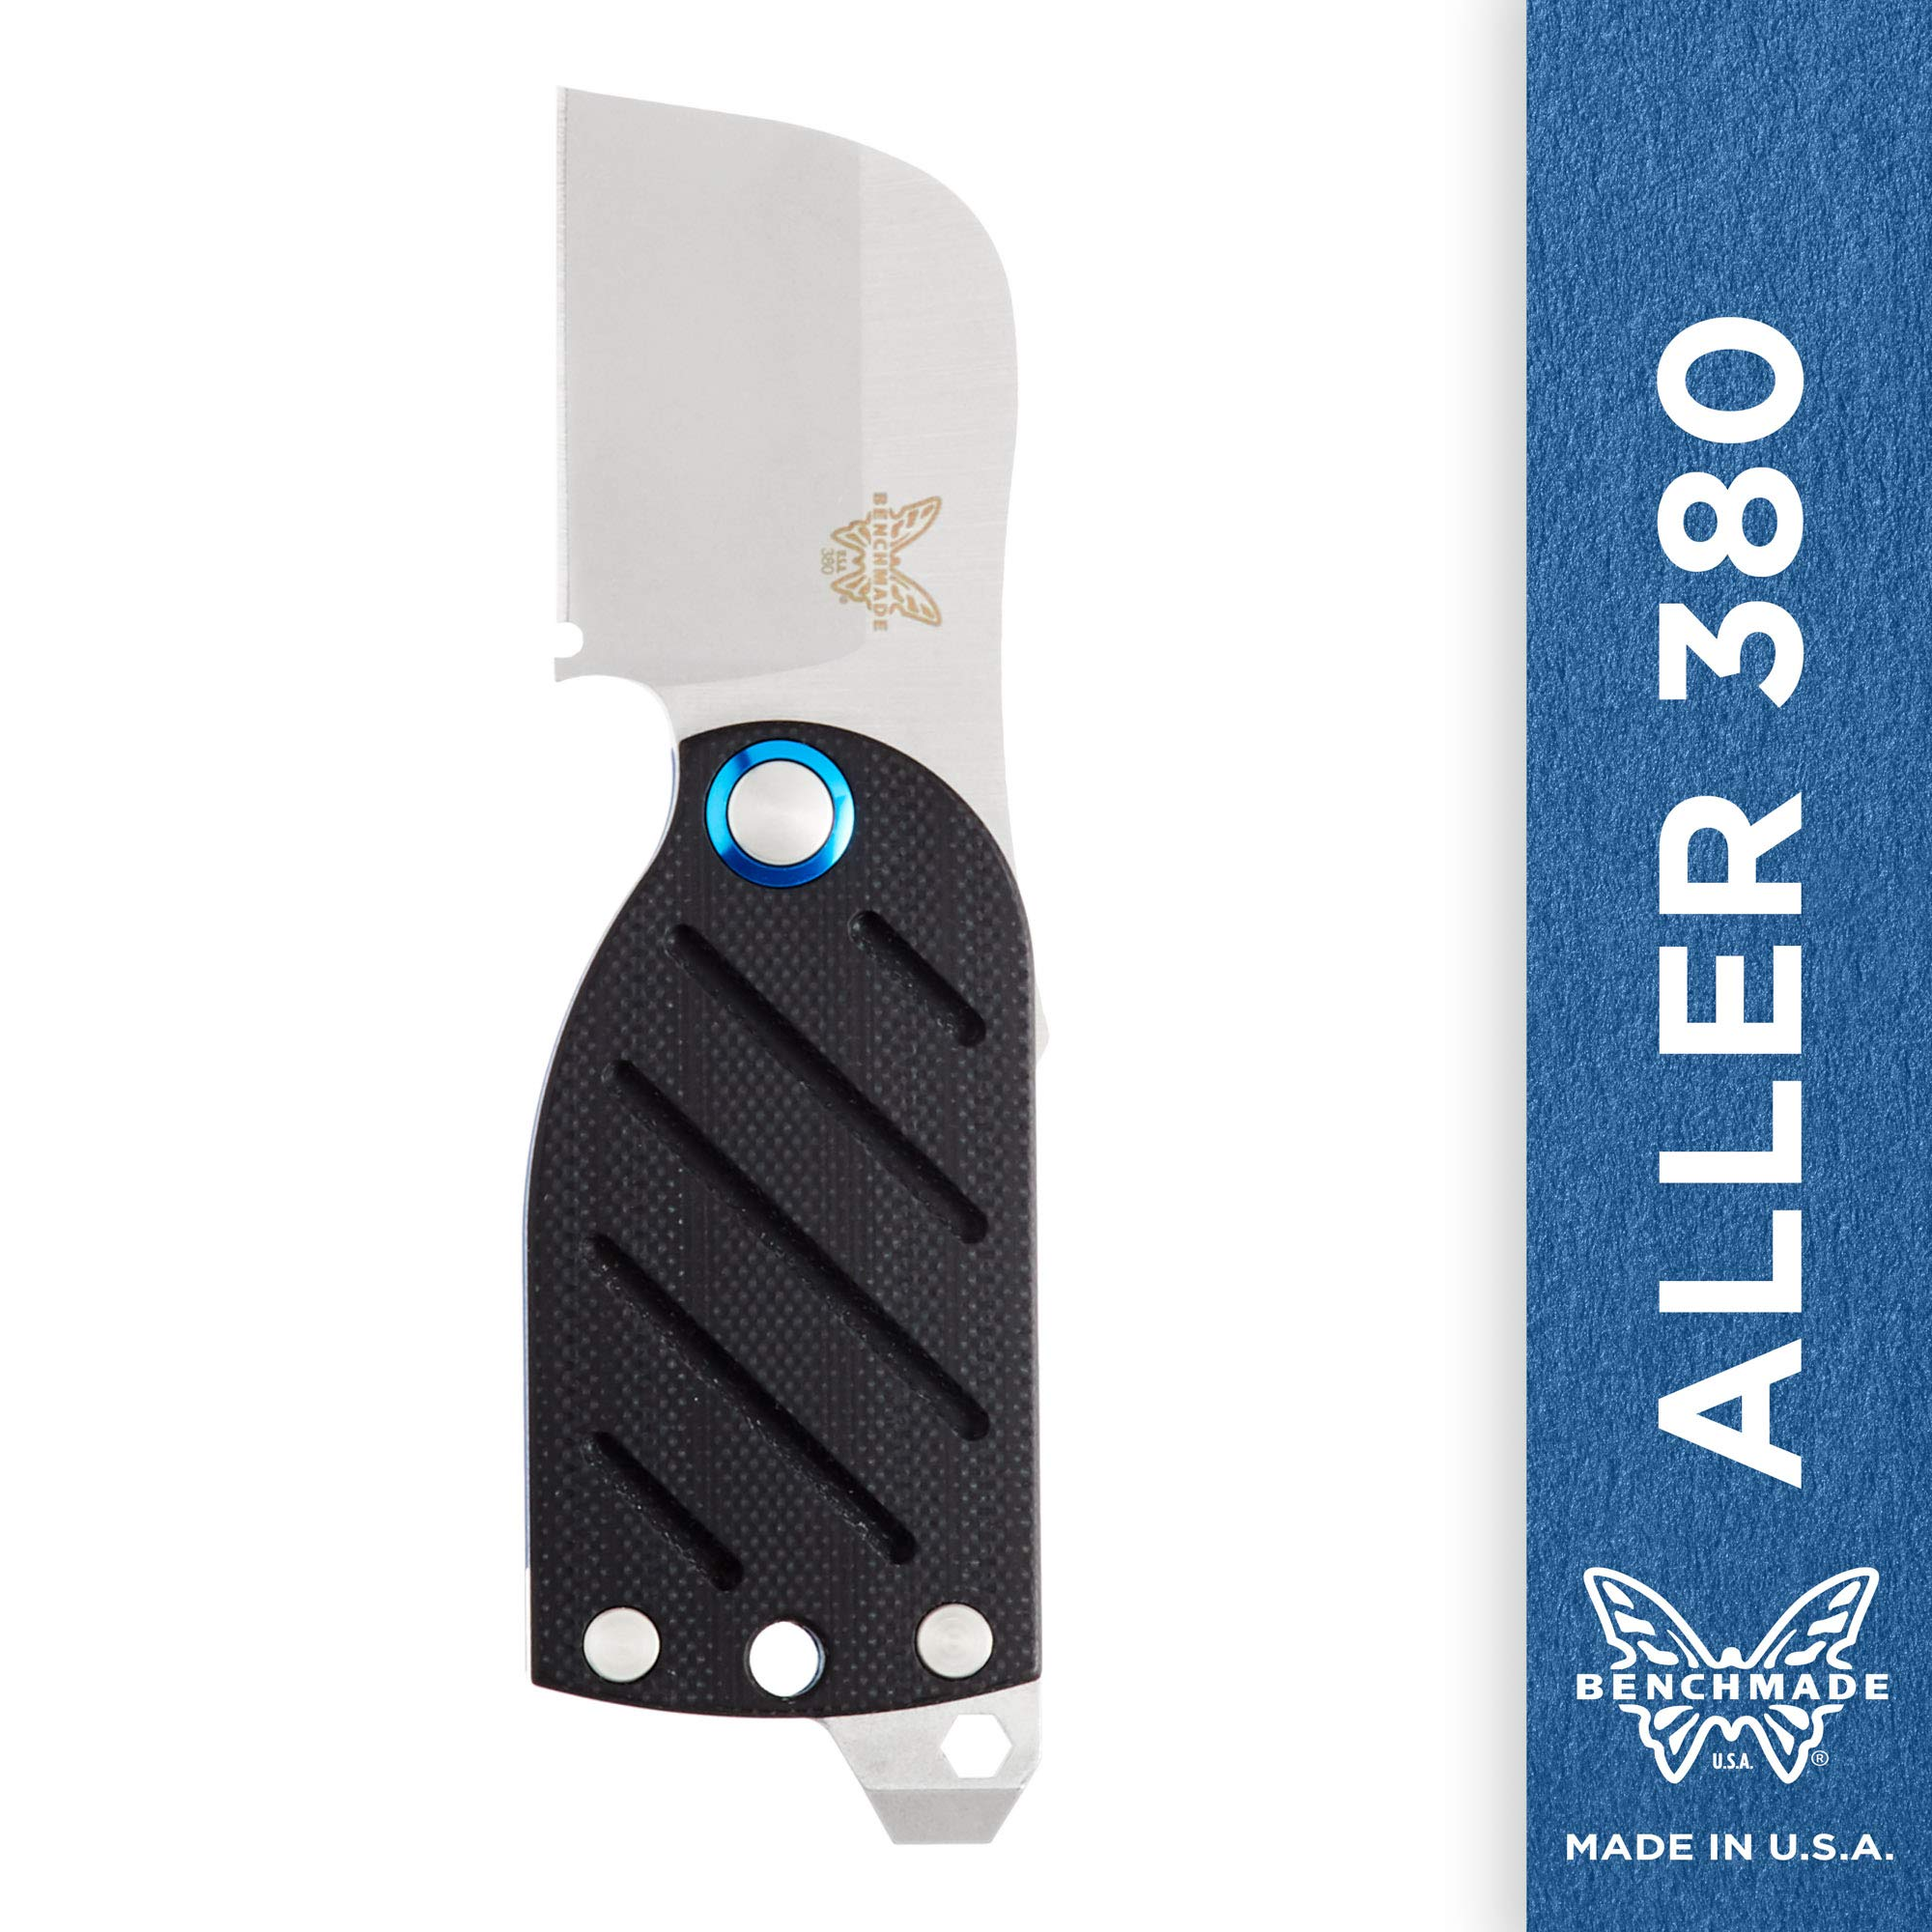 Benchmade - Aller, Black/Blue by Benchmade (Image #1)